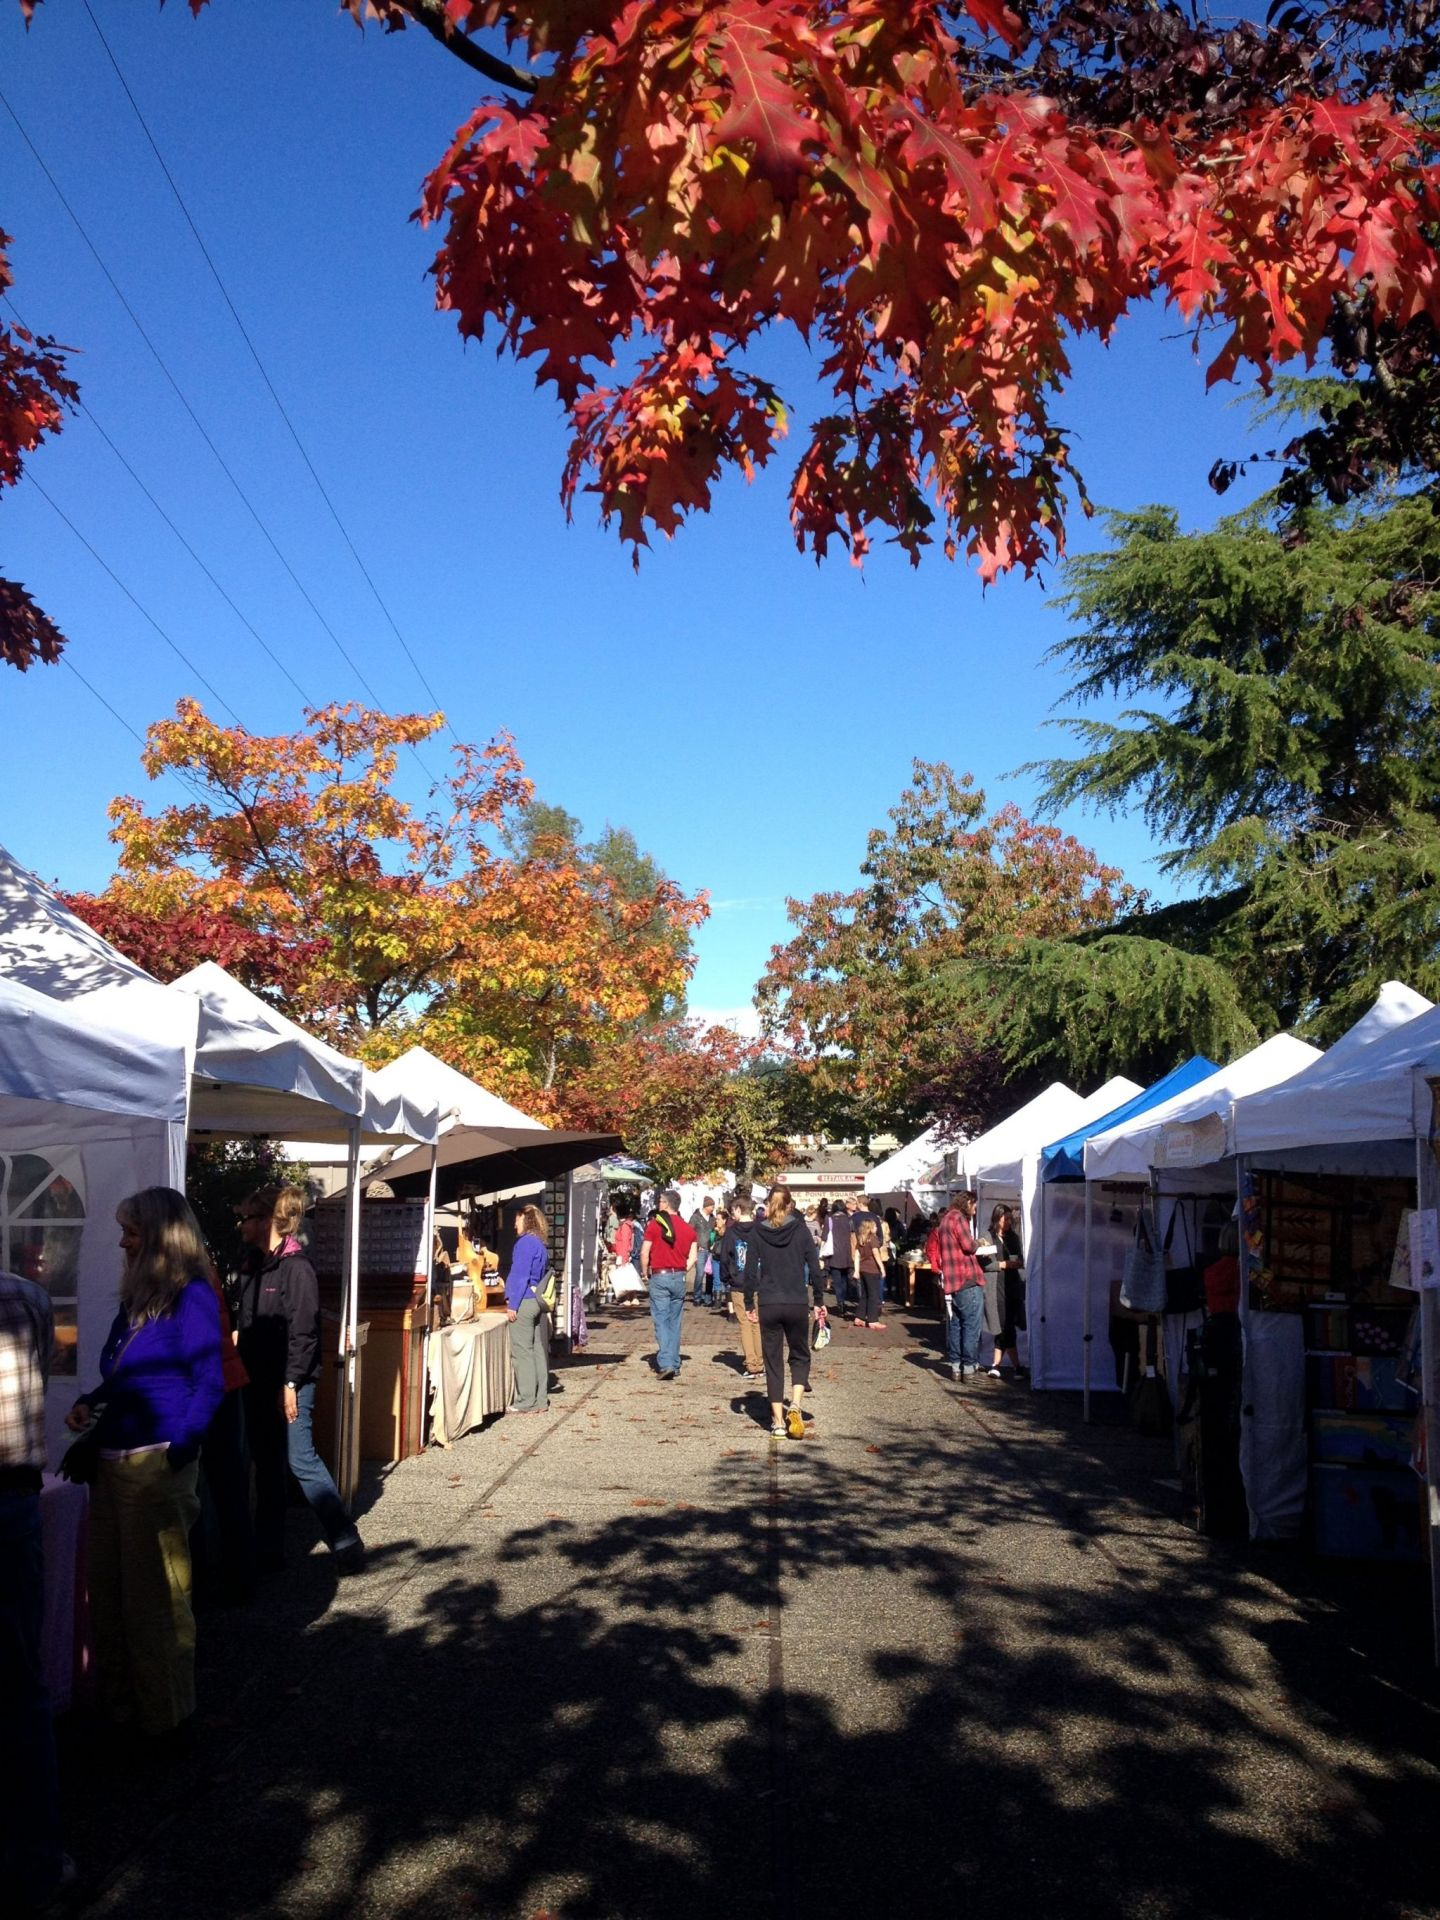 Market stalls in the fall